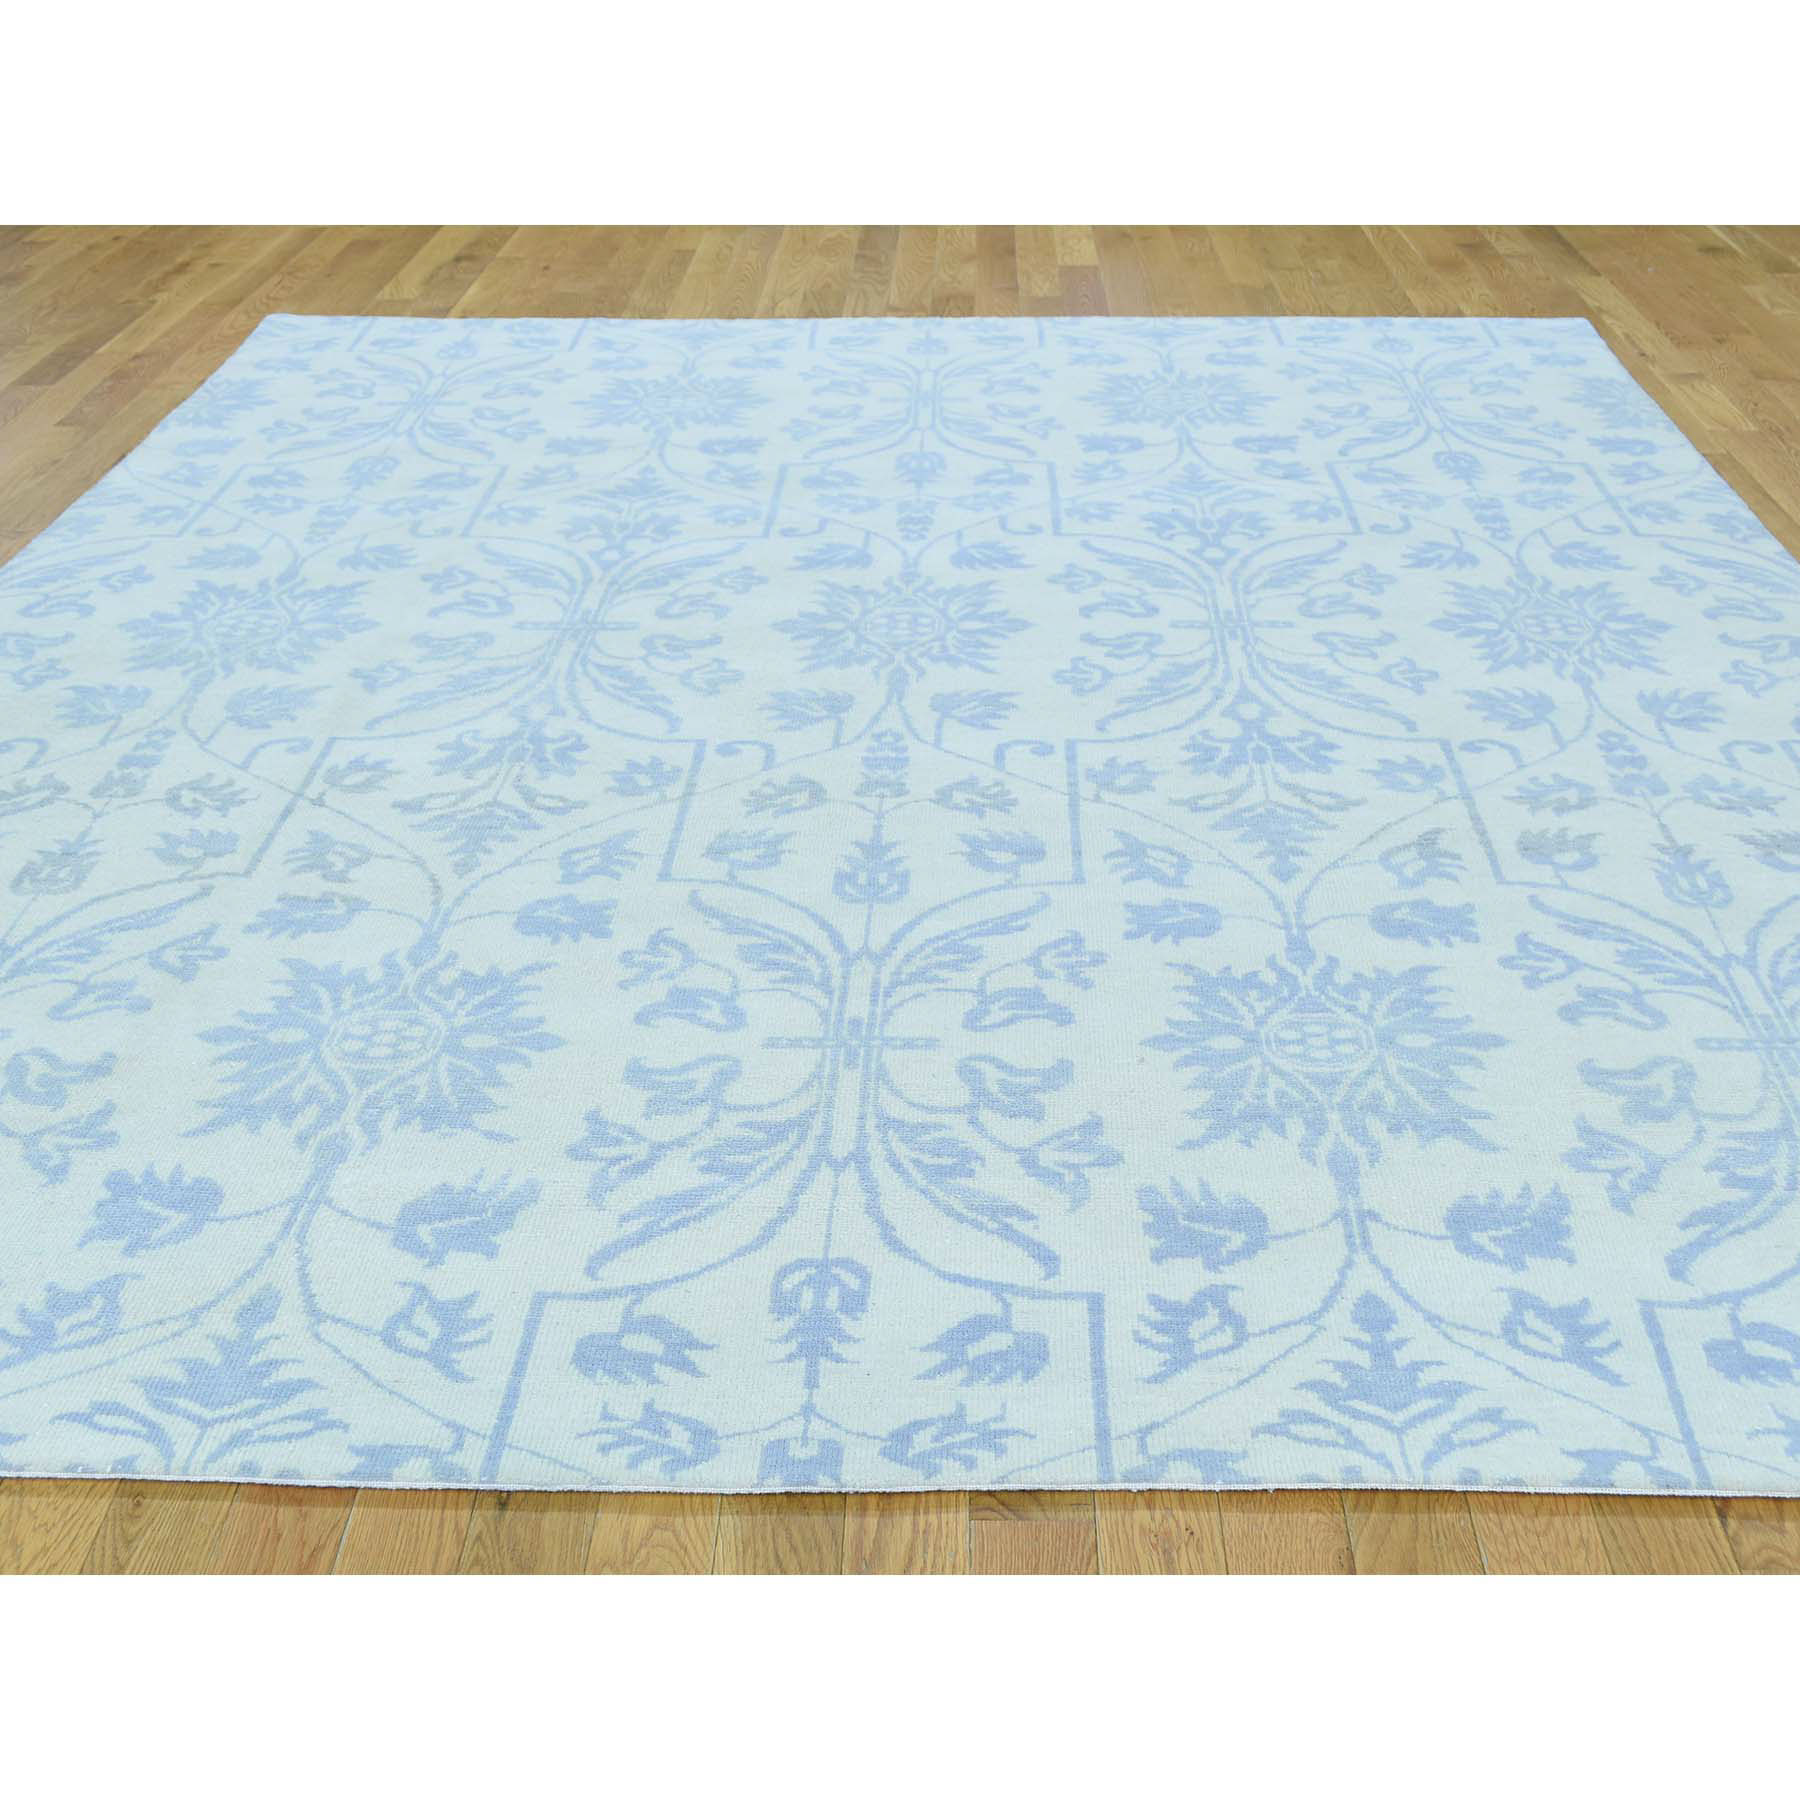 8-x9-10  Hand-Knotted Tone-on-Tone Arts and Crafts Design Oriental Rug